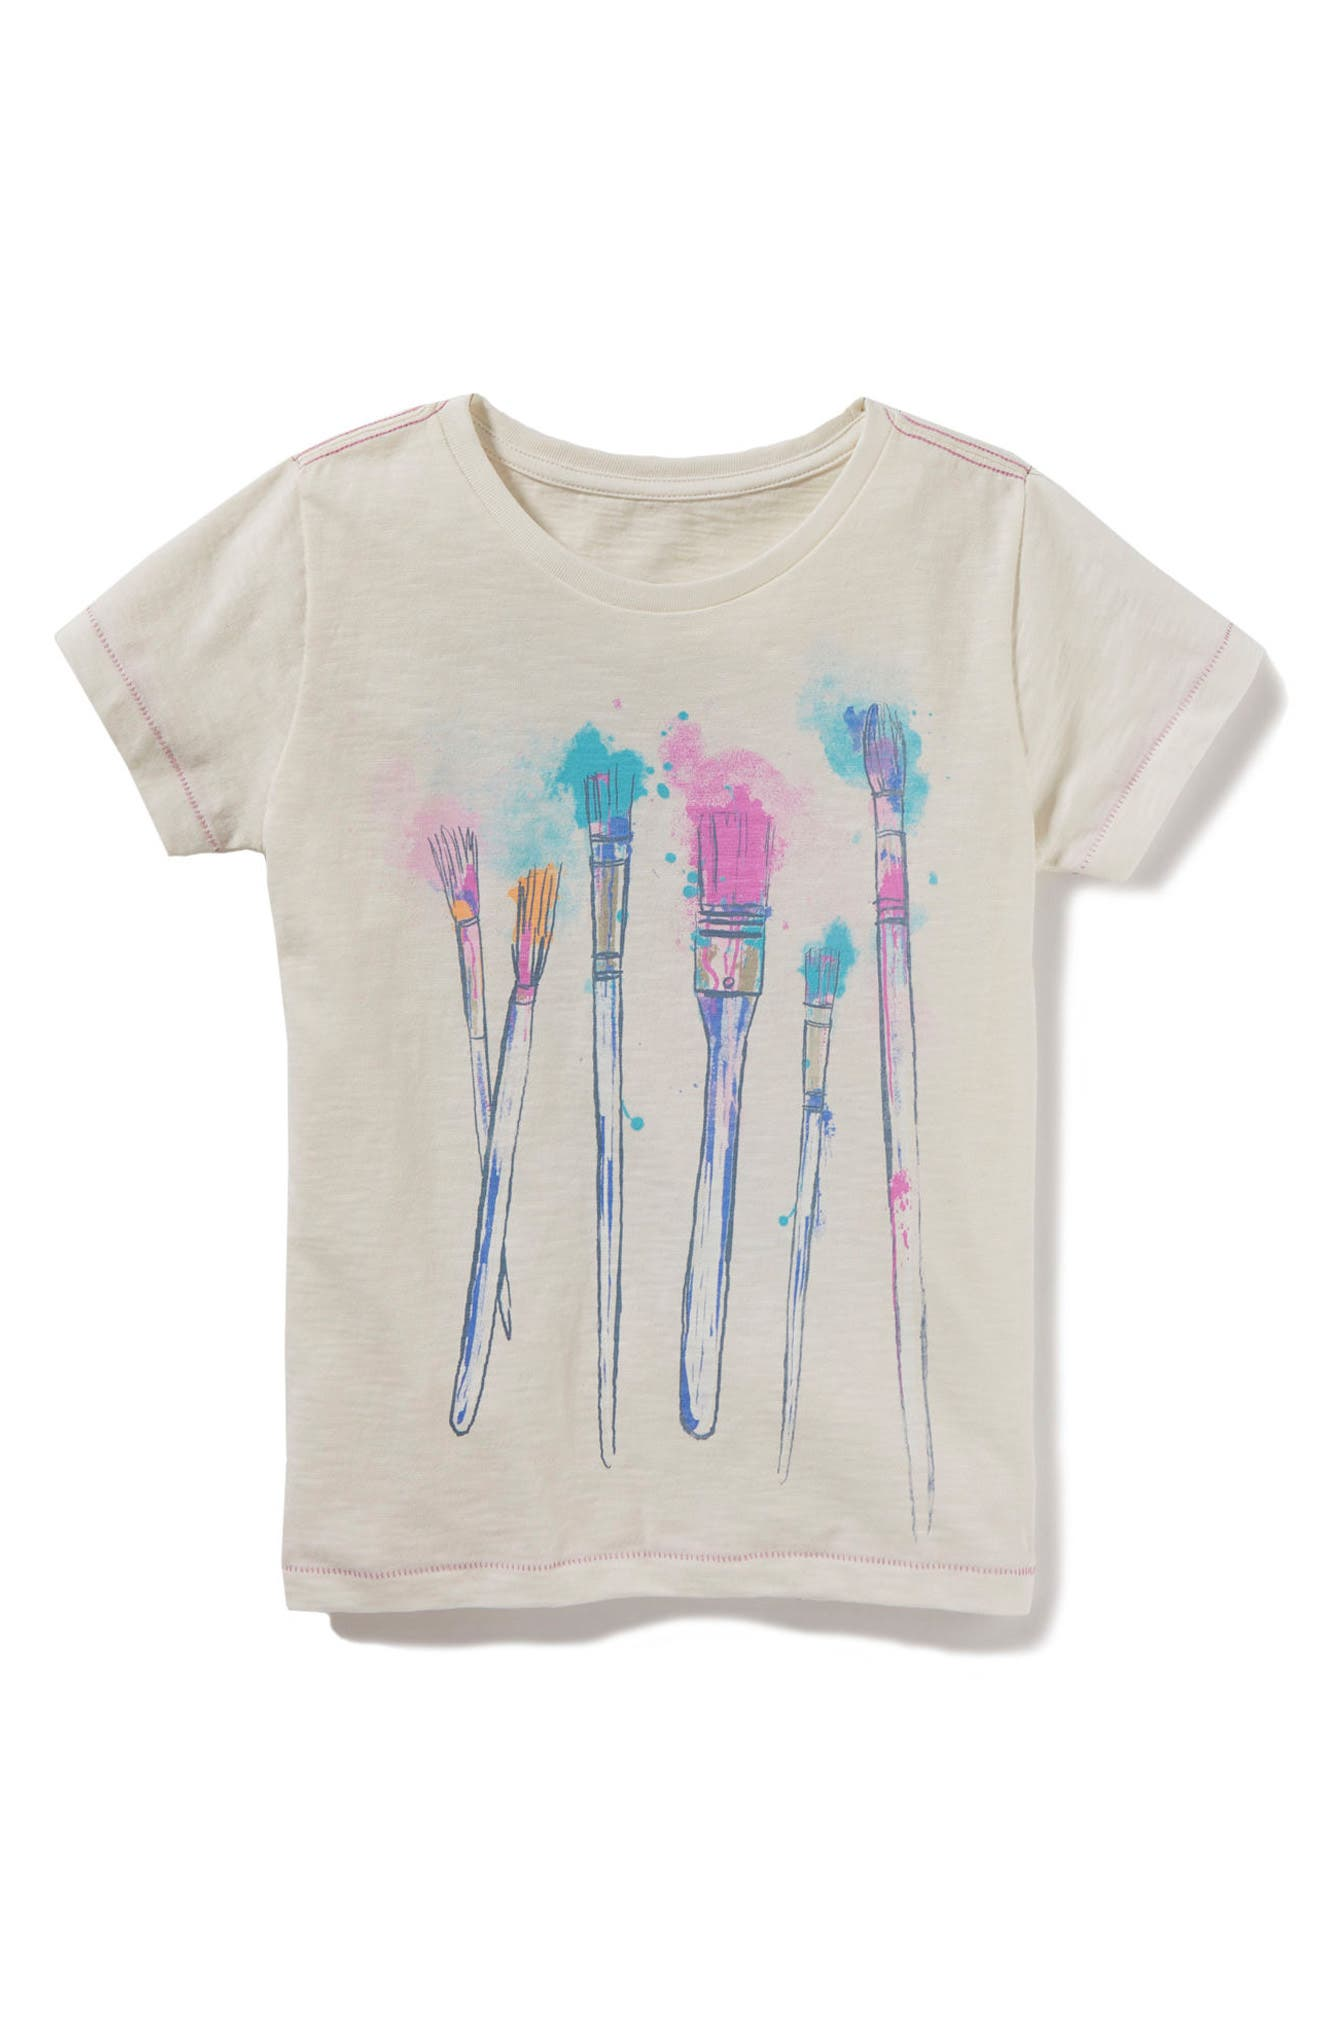 Art is Not Graphic Tee,                         Main,                         color, 100